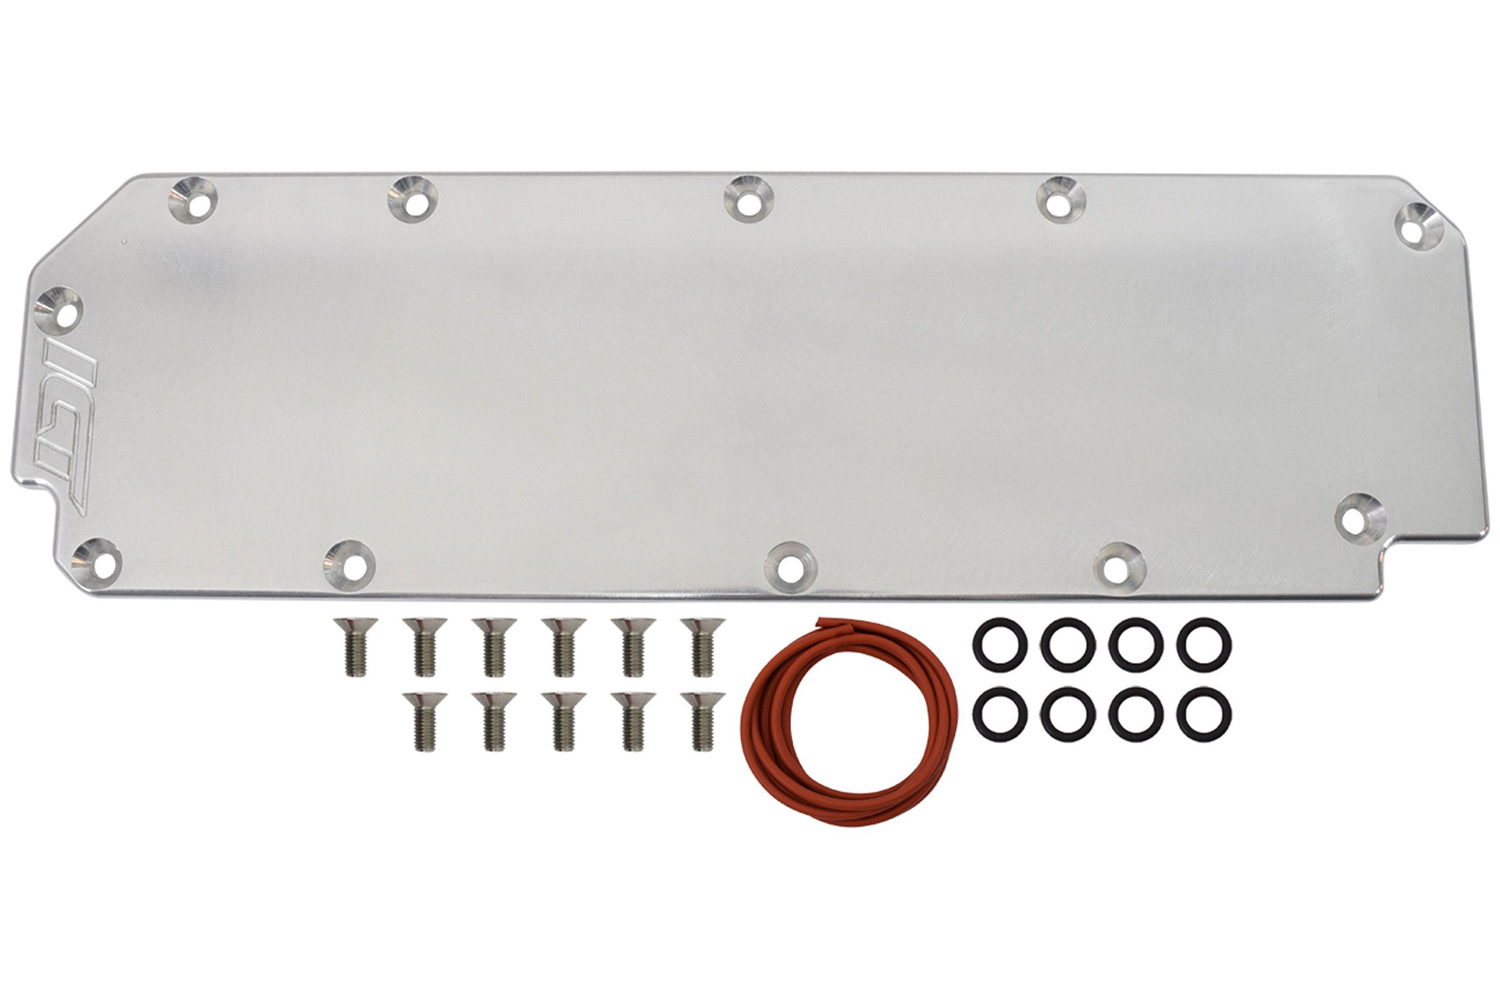 ICT Billet 551168 Valley Cover, O-Rings / Hardware, 3/8 in Thick, Aluminum, Natural, GM GenV LT-Series, Each